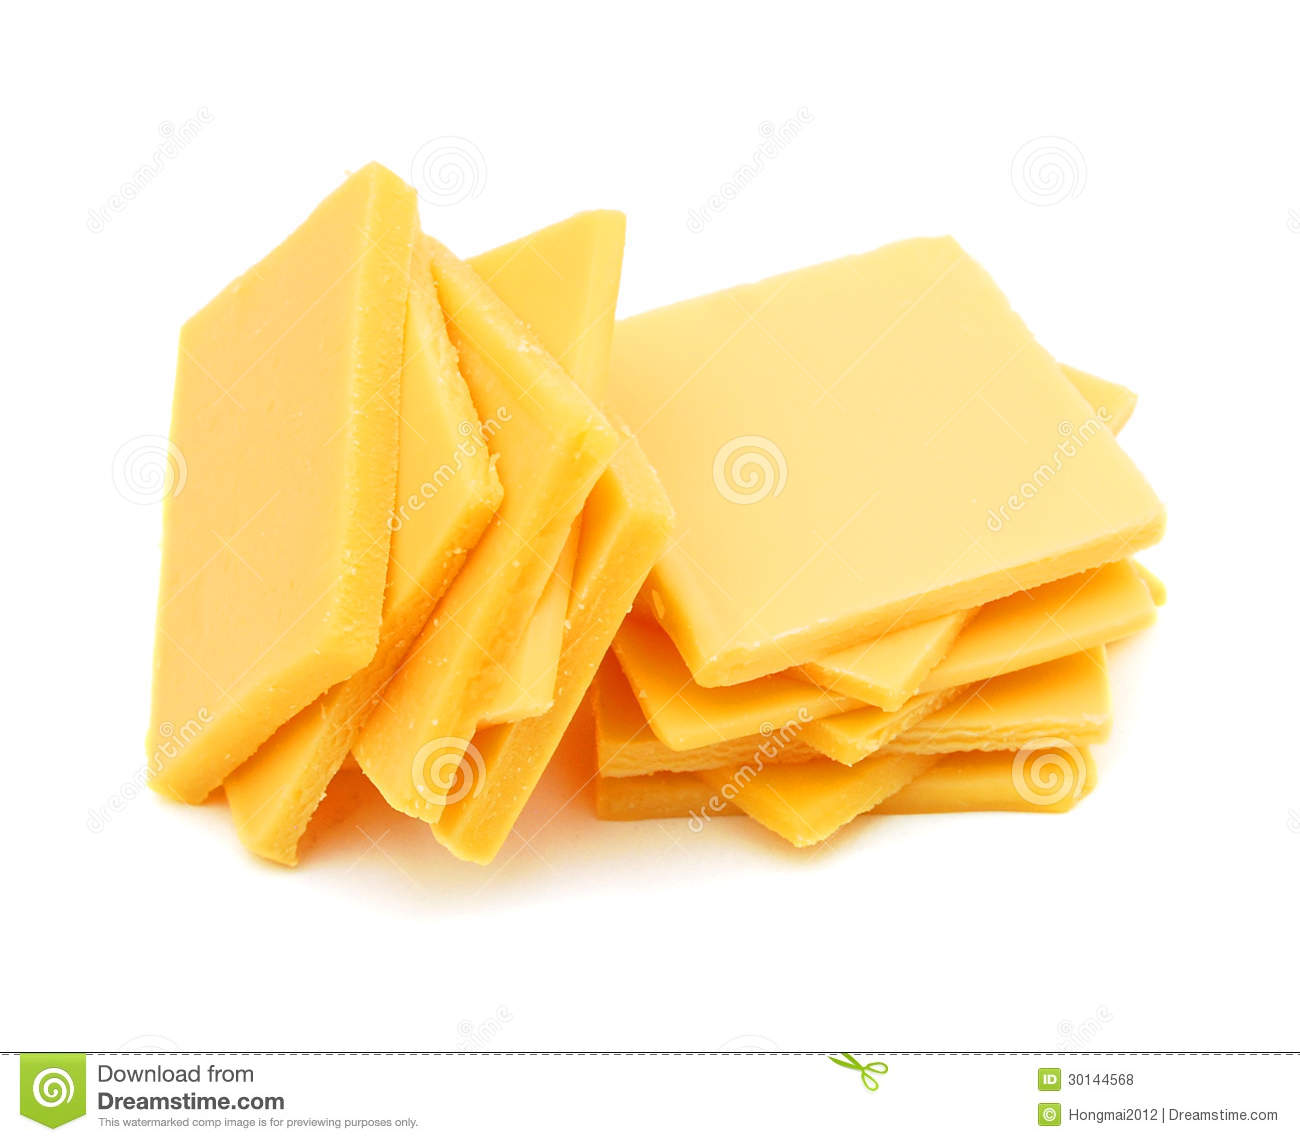 how to eat cheese slices